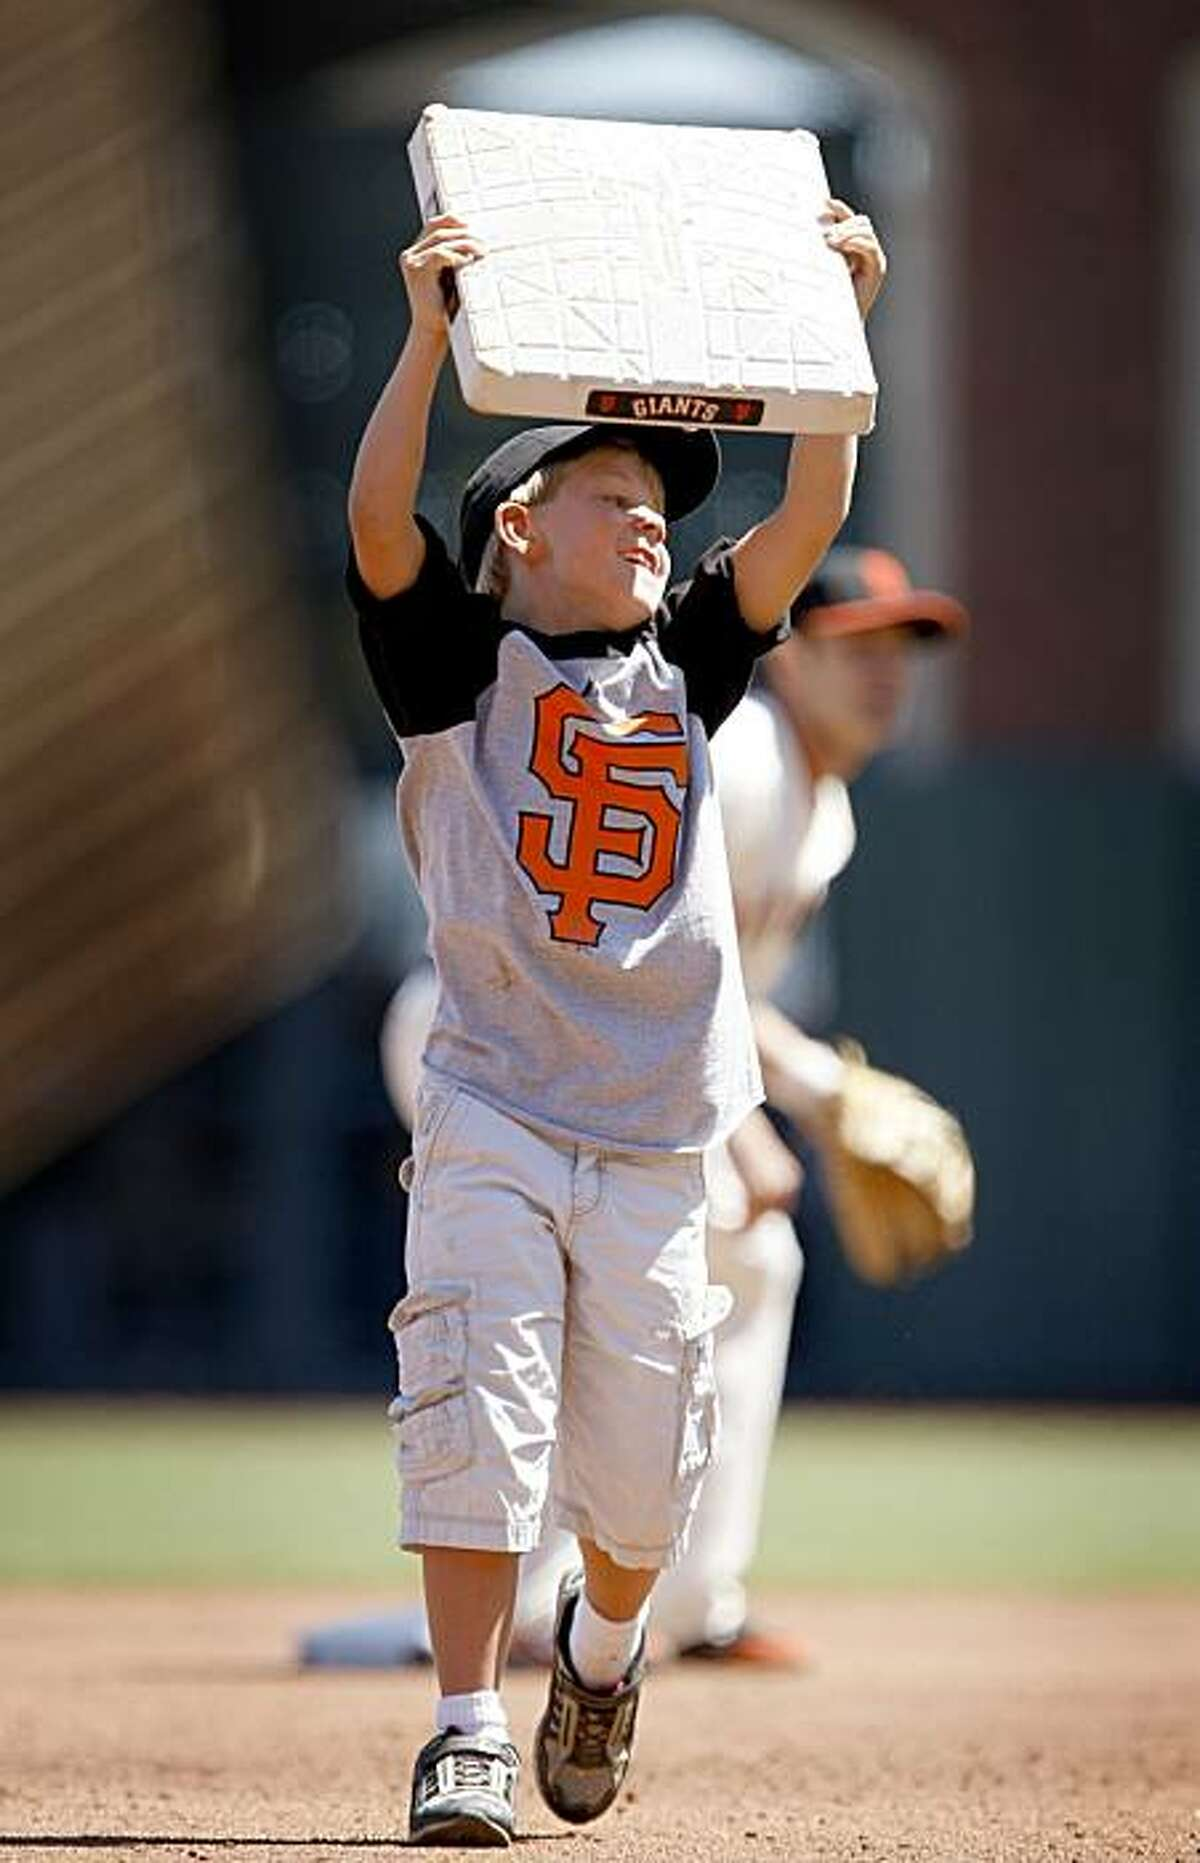 Little Boy's Dream - 2:05 p.m. -AT&T Park, San Francisco While shooting the Giants game, I saw seven year old Connor Fingles run out on the field to change second base for his birthday. Now that's what I call a birthday present.... Camera settings: Canon EOS-1D MkIII, ISO 250, 1/1000, f4, 400mm